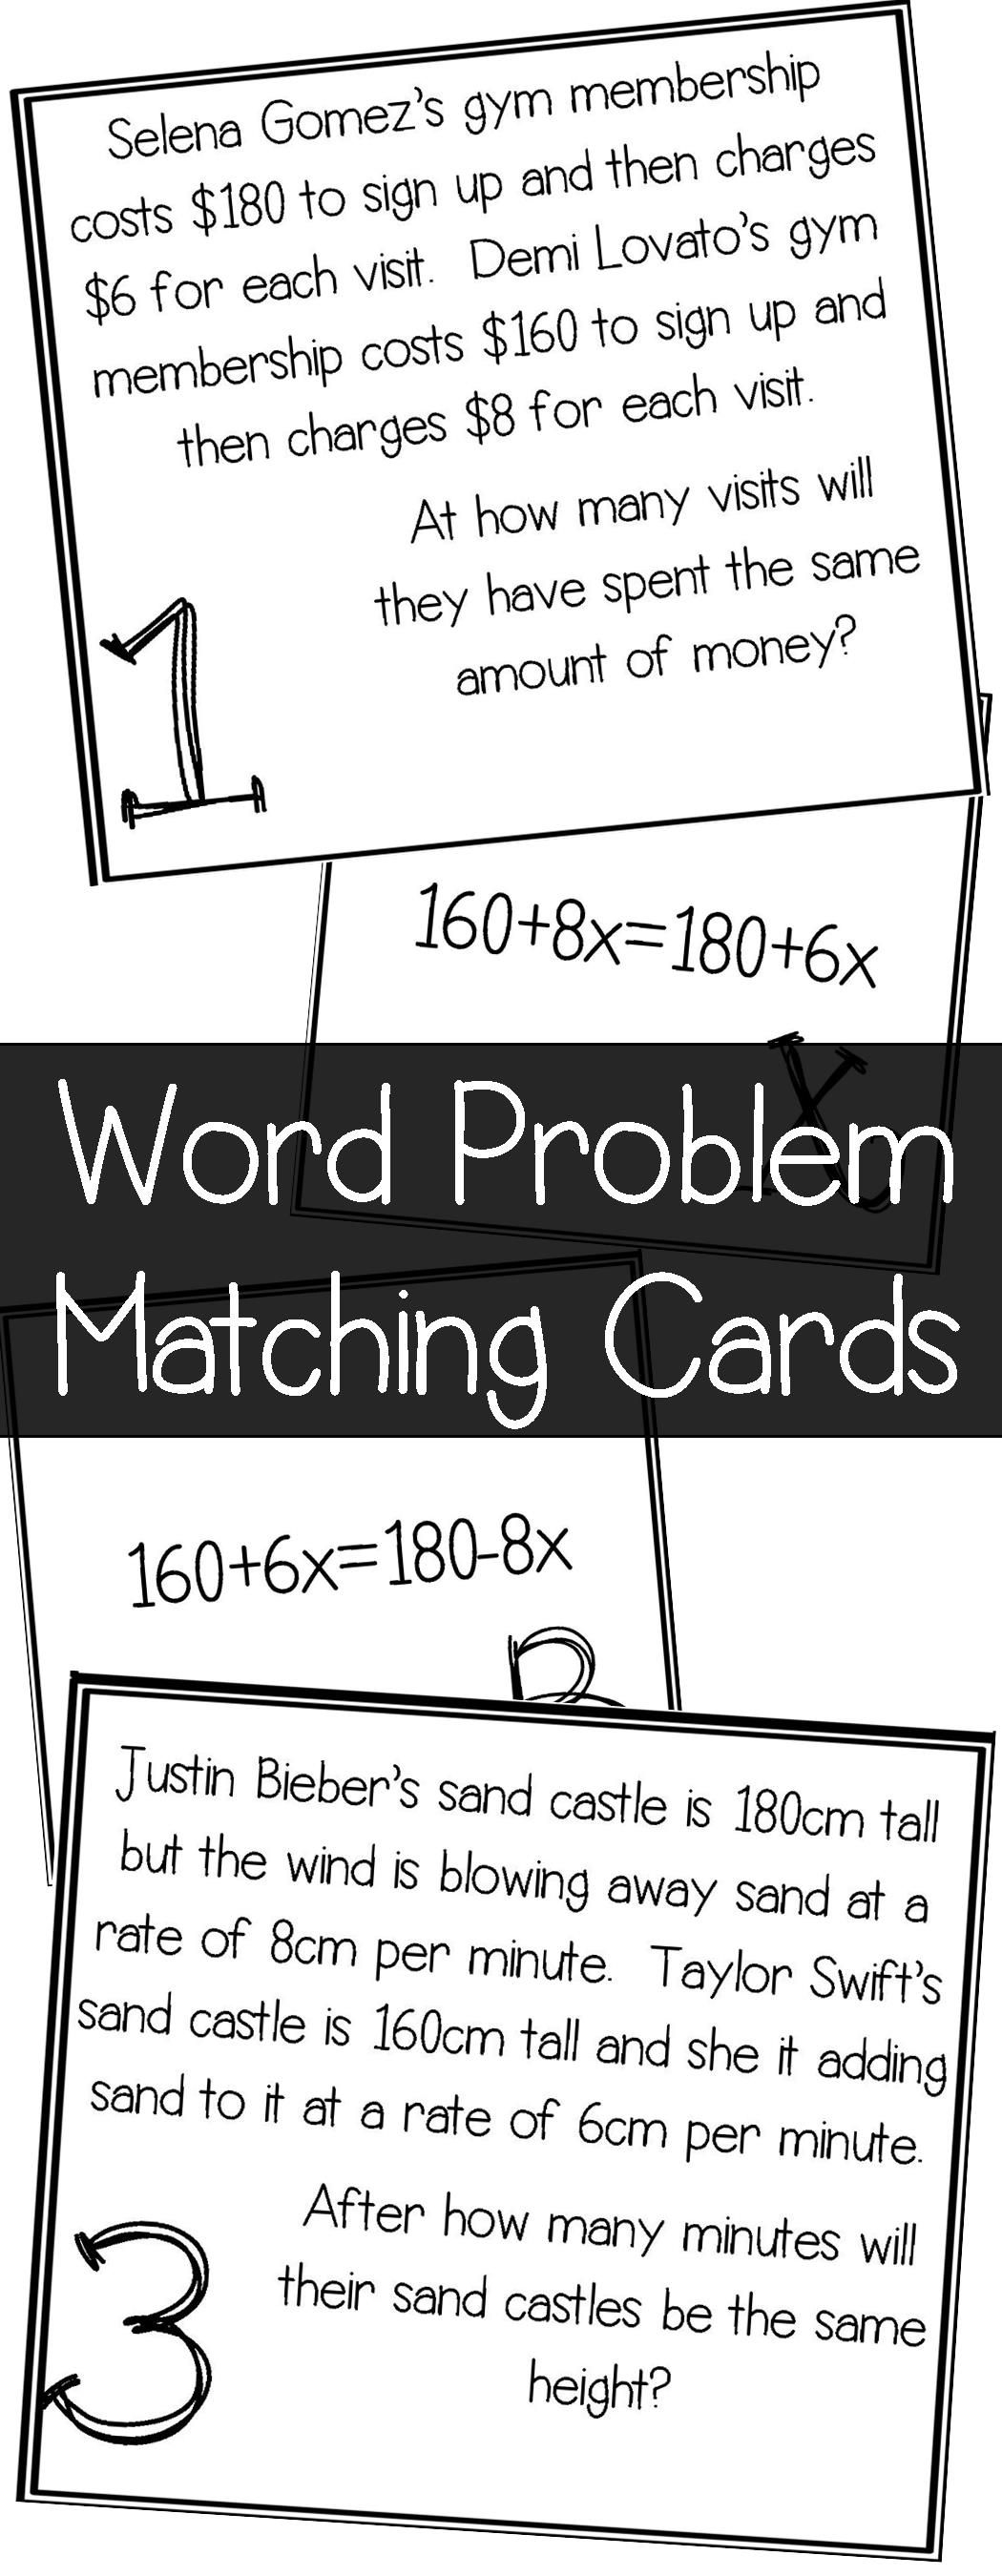 worksheet One Step Equation Word Problems equations with variables on both sides word problem matching cards cards